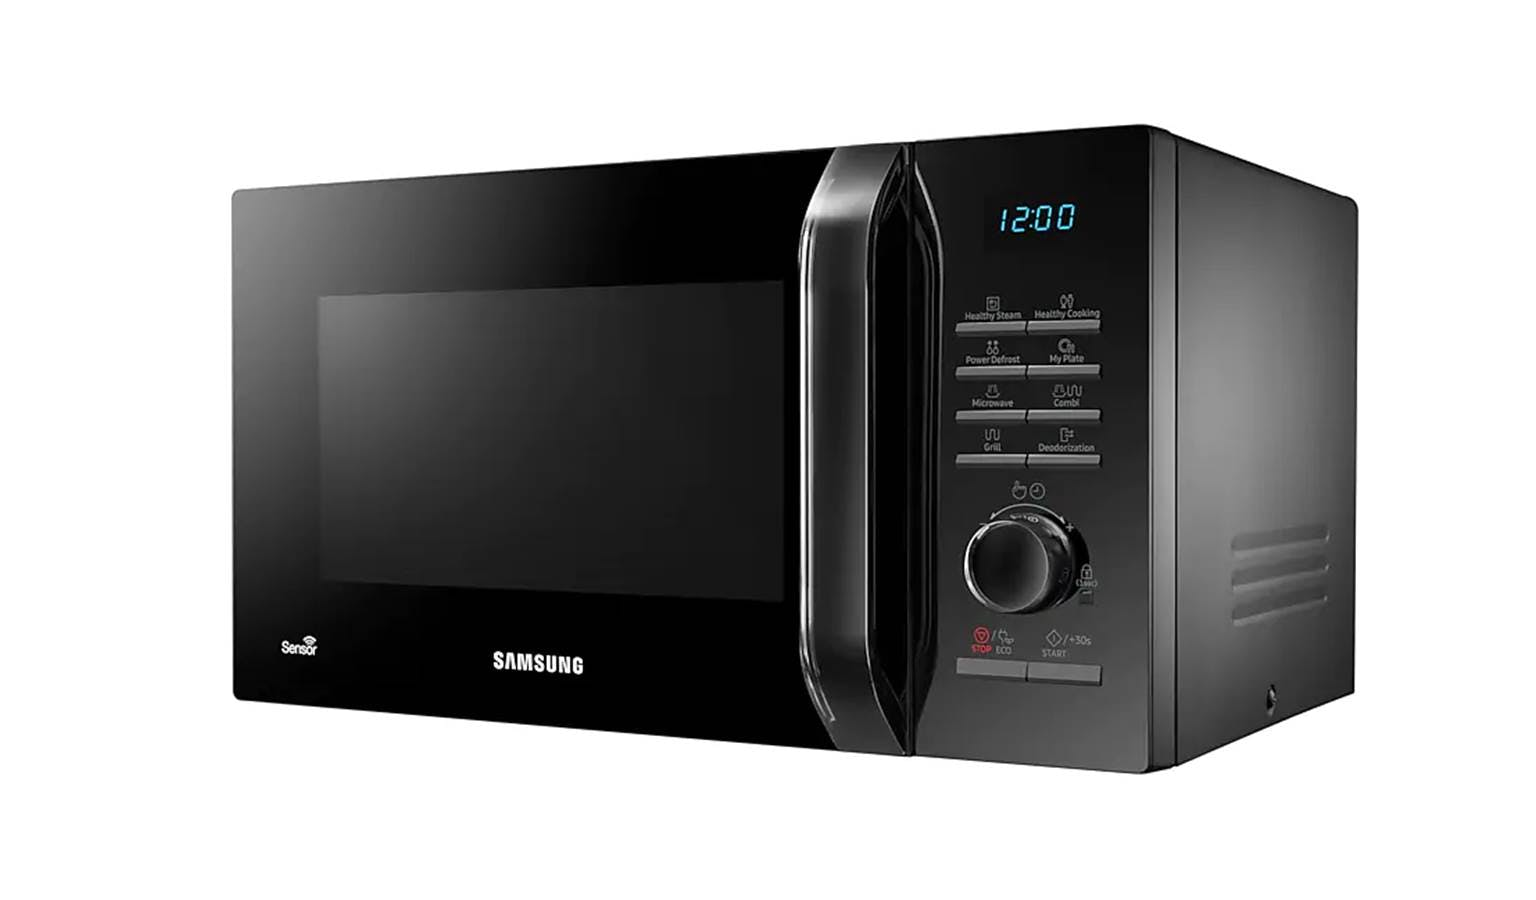 Samsung Mg23h3115gk Sm Grill Microwave Oven 23l Harvey